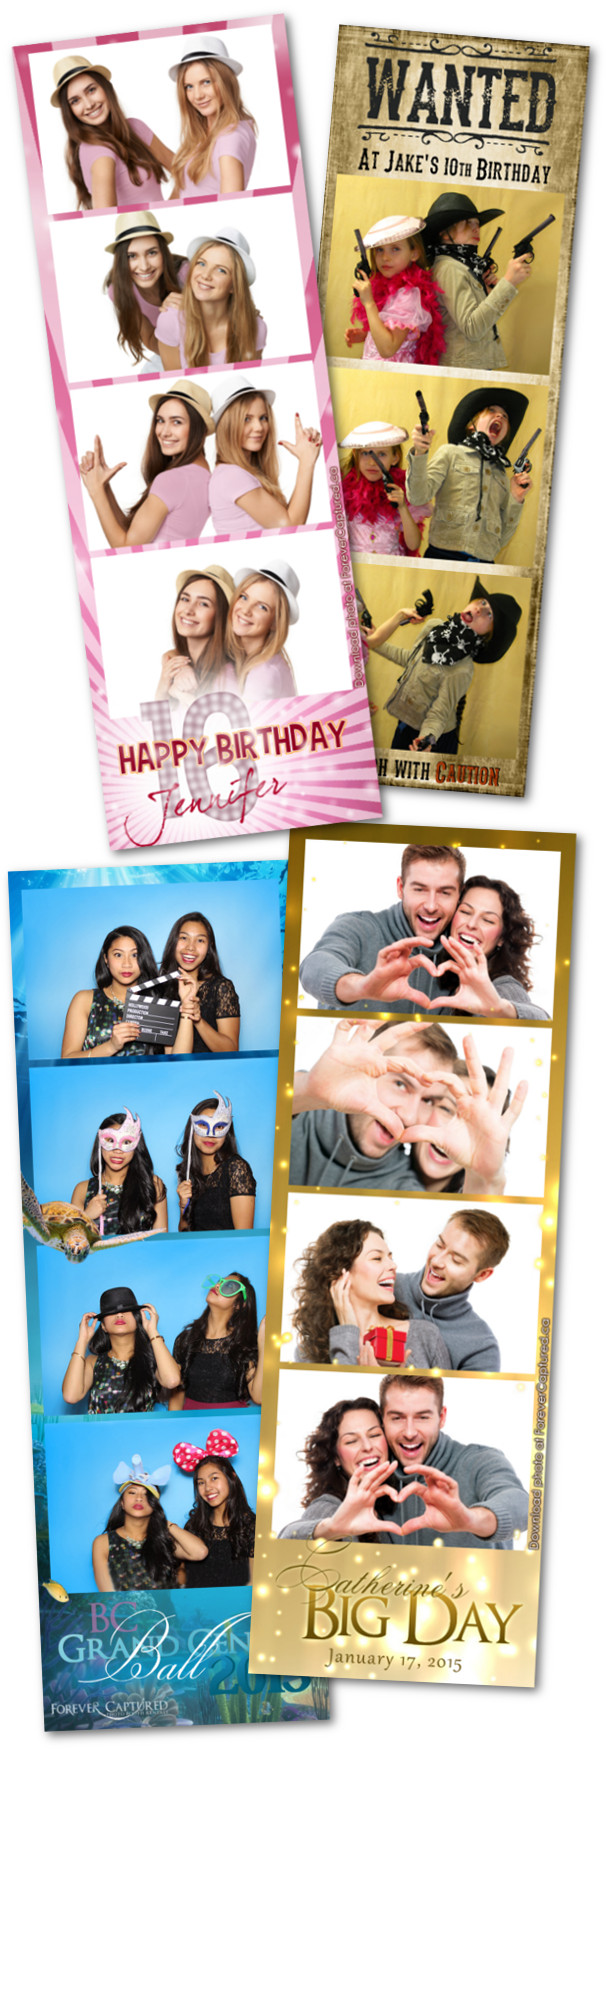 Photobooth rentals for parties, weddings, and events in Burnaby, BC.